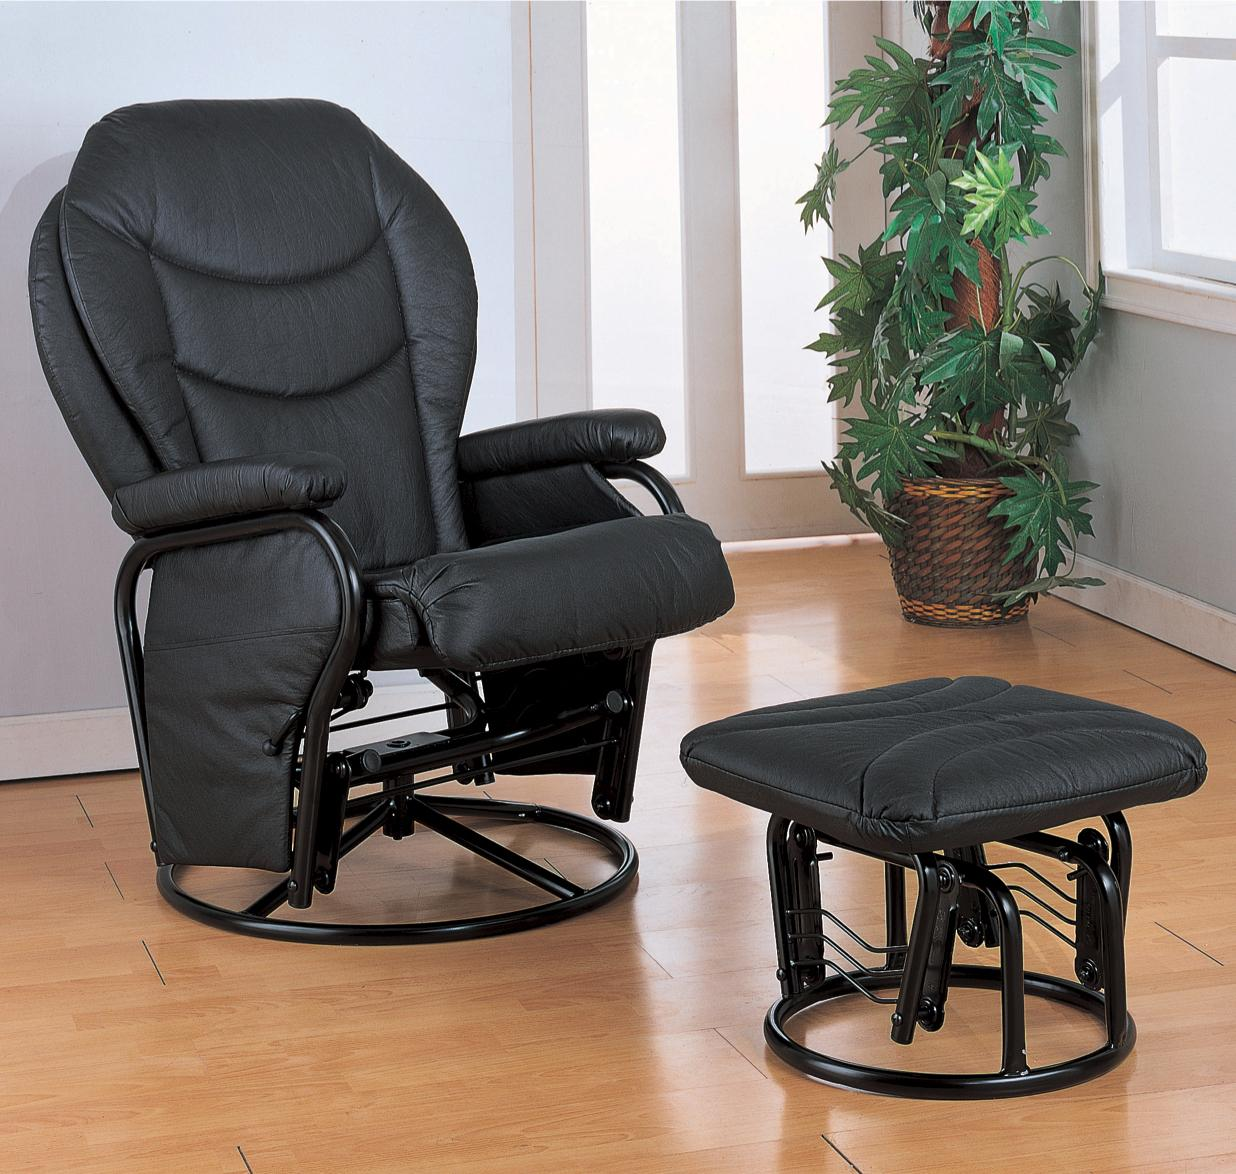 Recliners with Ottomans Recliner with Ottoman by Coaster at Northeast Factory Direct